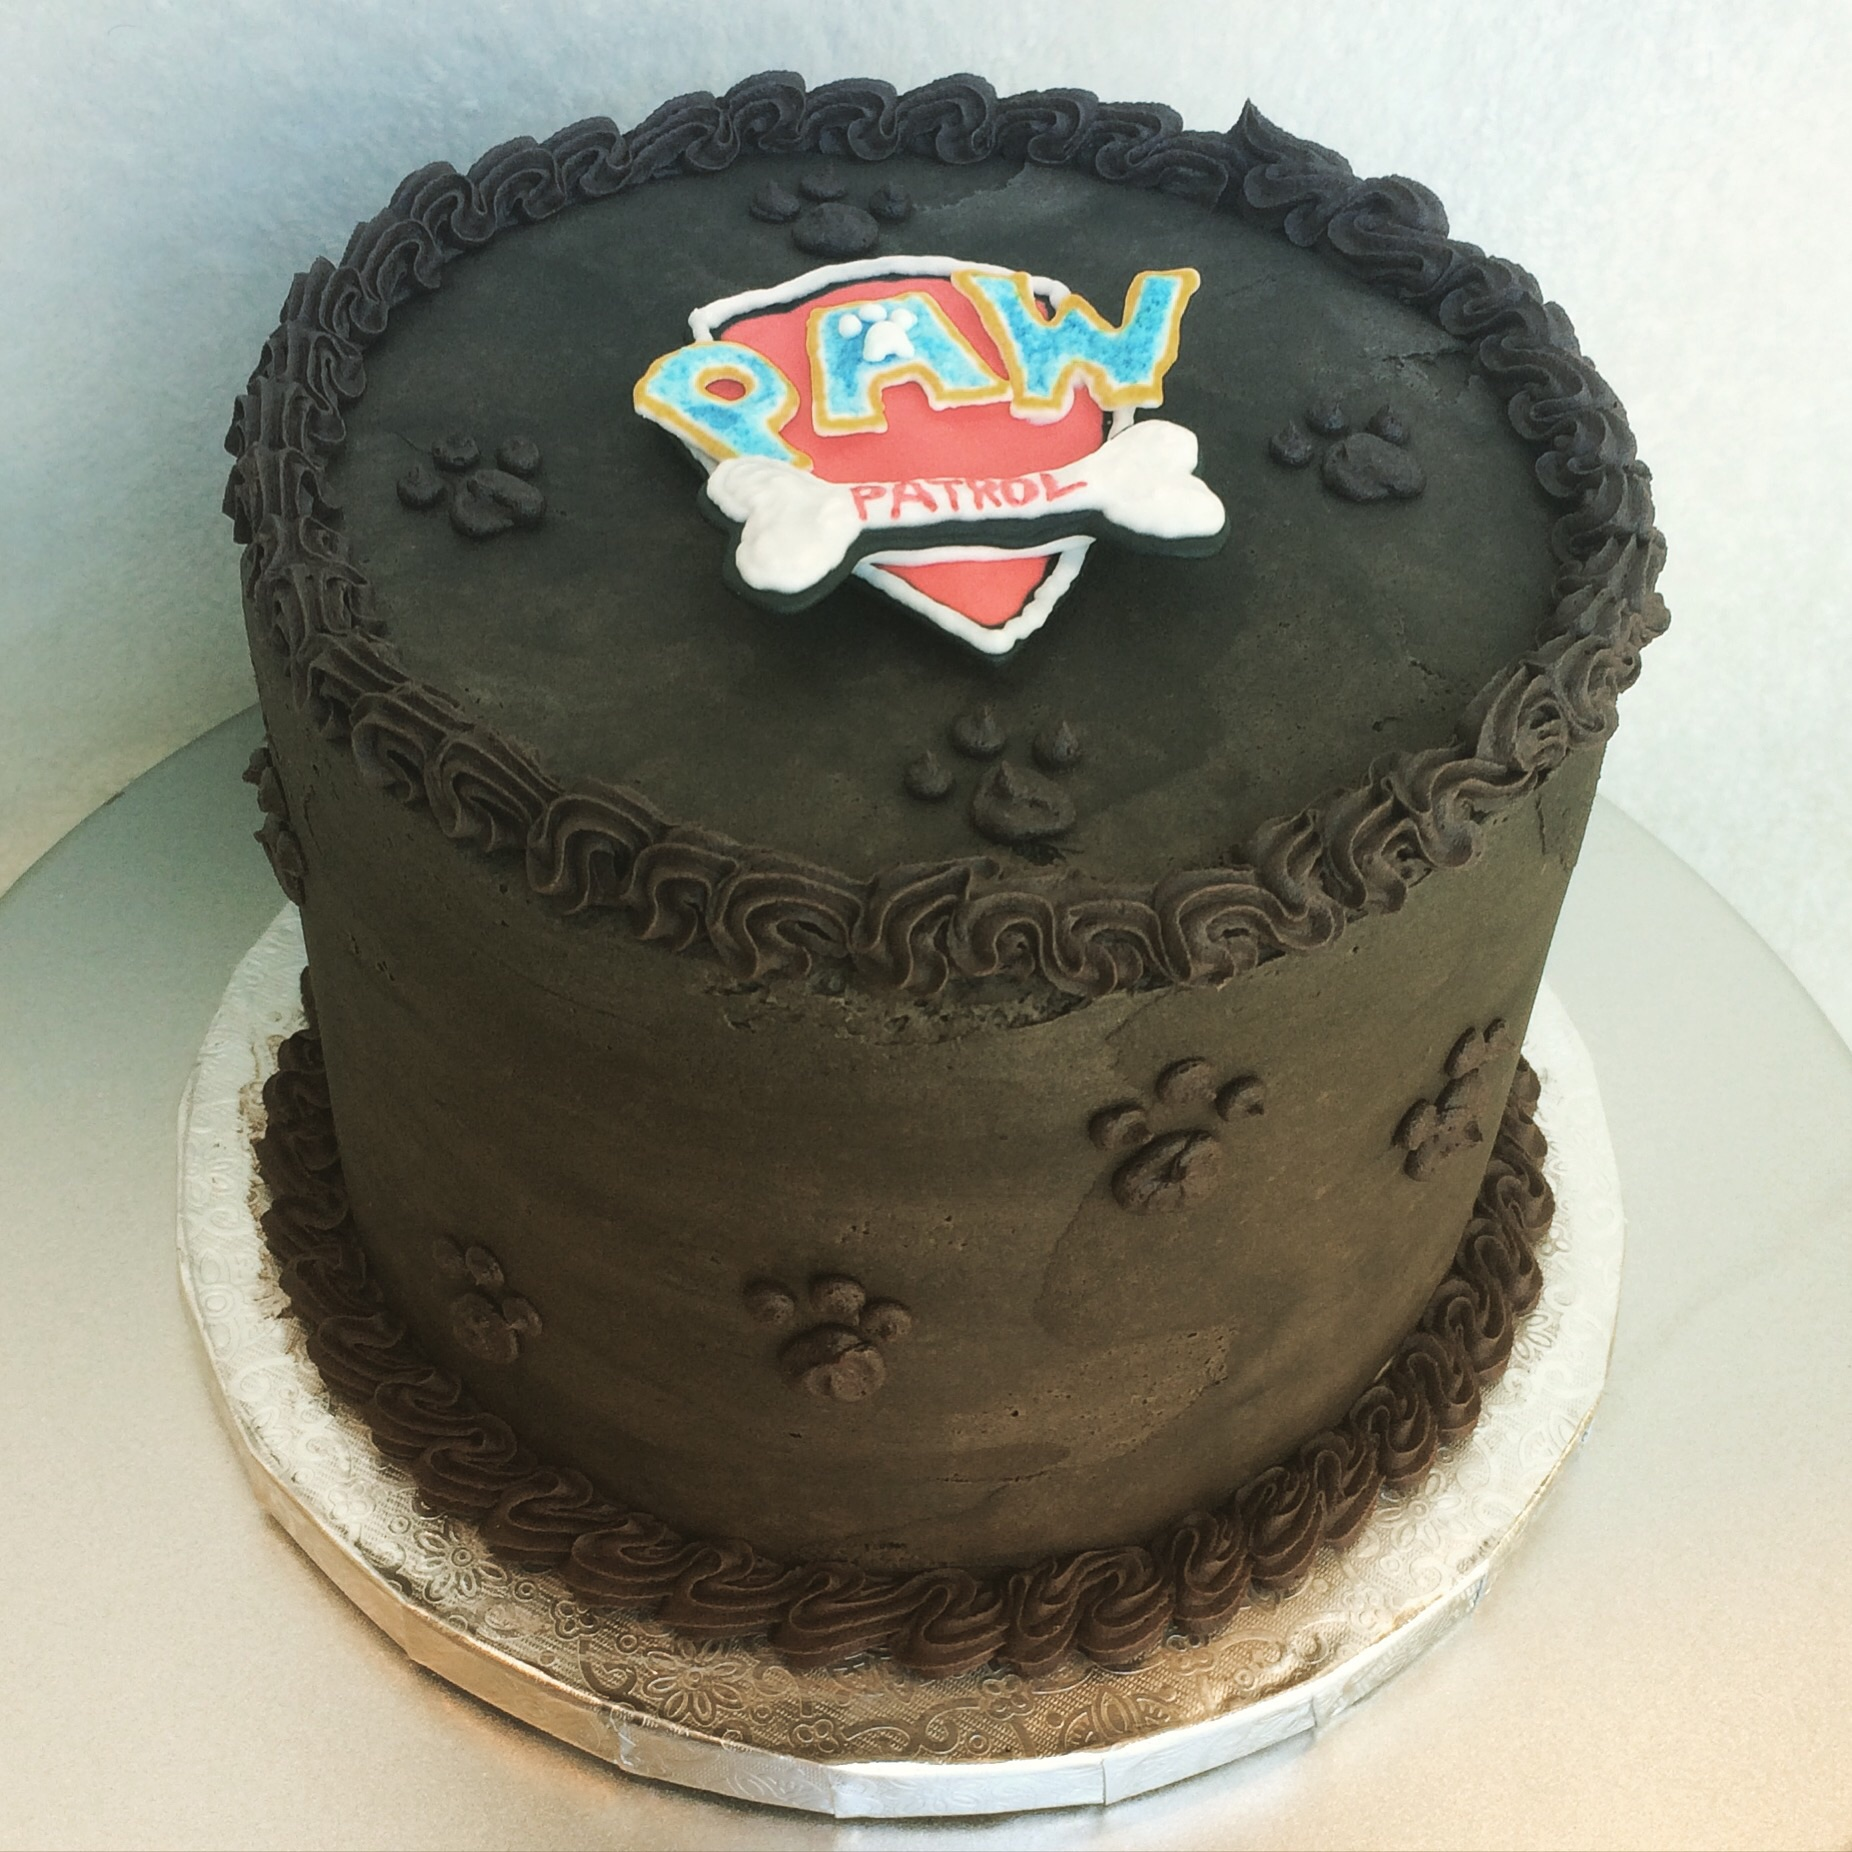 Paw Patrol birthday cake, chocolate cake topped with black cocoa buttercream